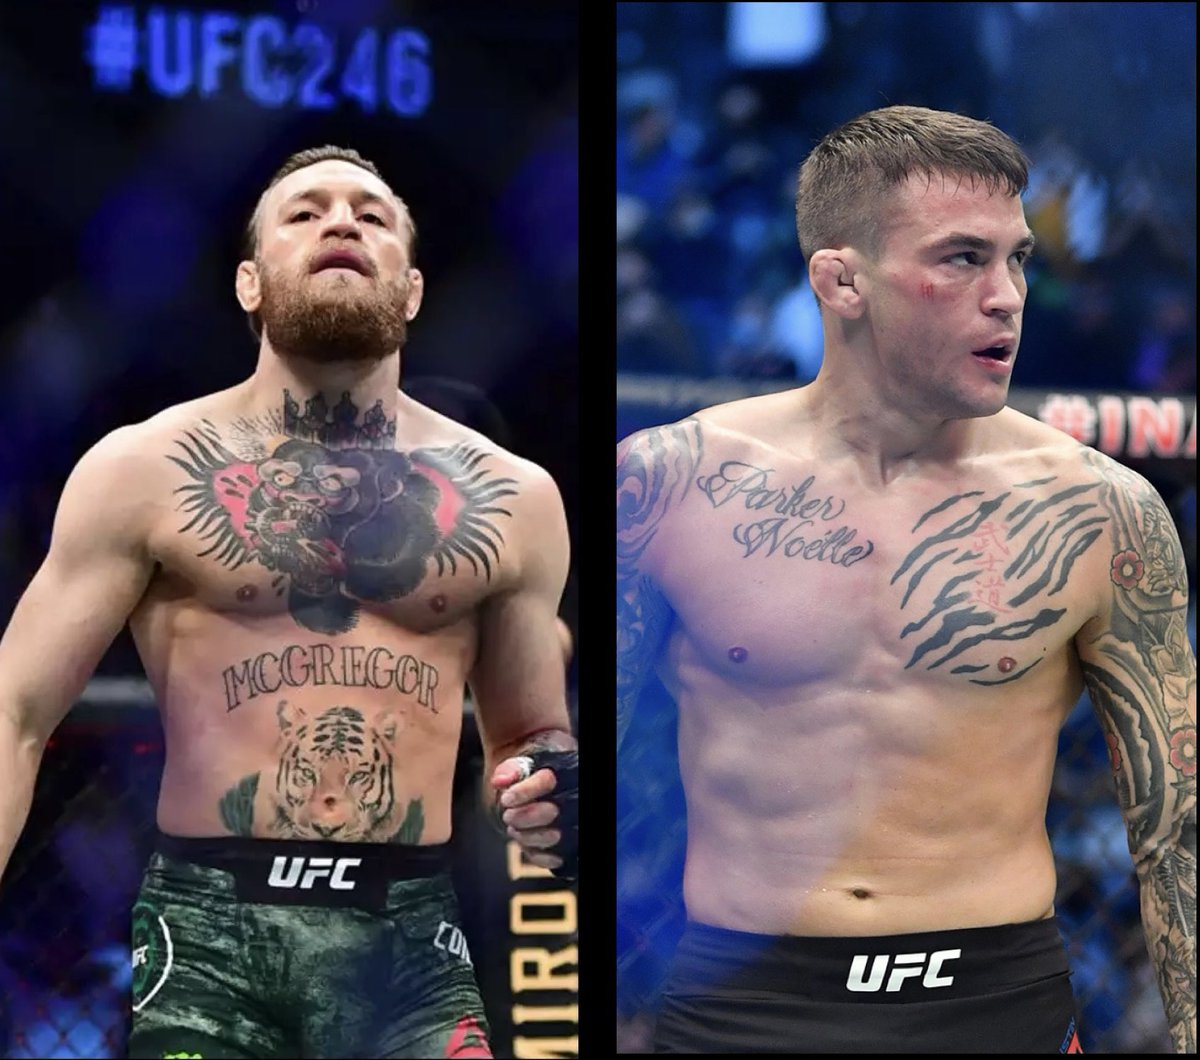 For all the marbles.... 🇮🇪 vs 💎 for a third time? #ufc #McGregor #poirier #ElDiamante #McGregorPoirier